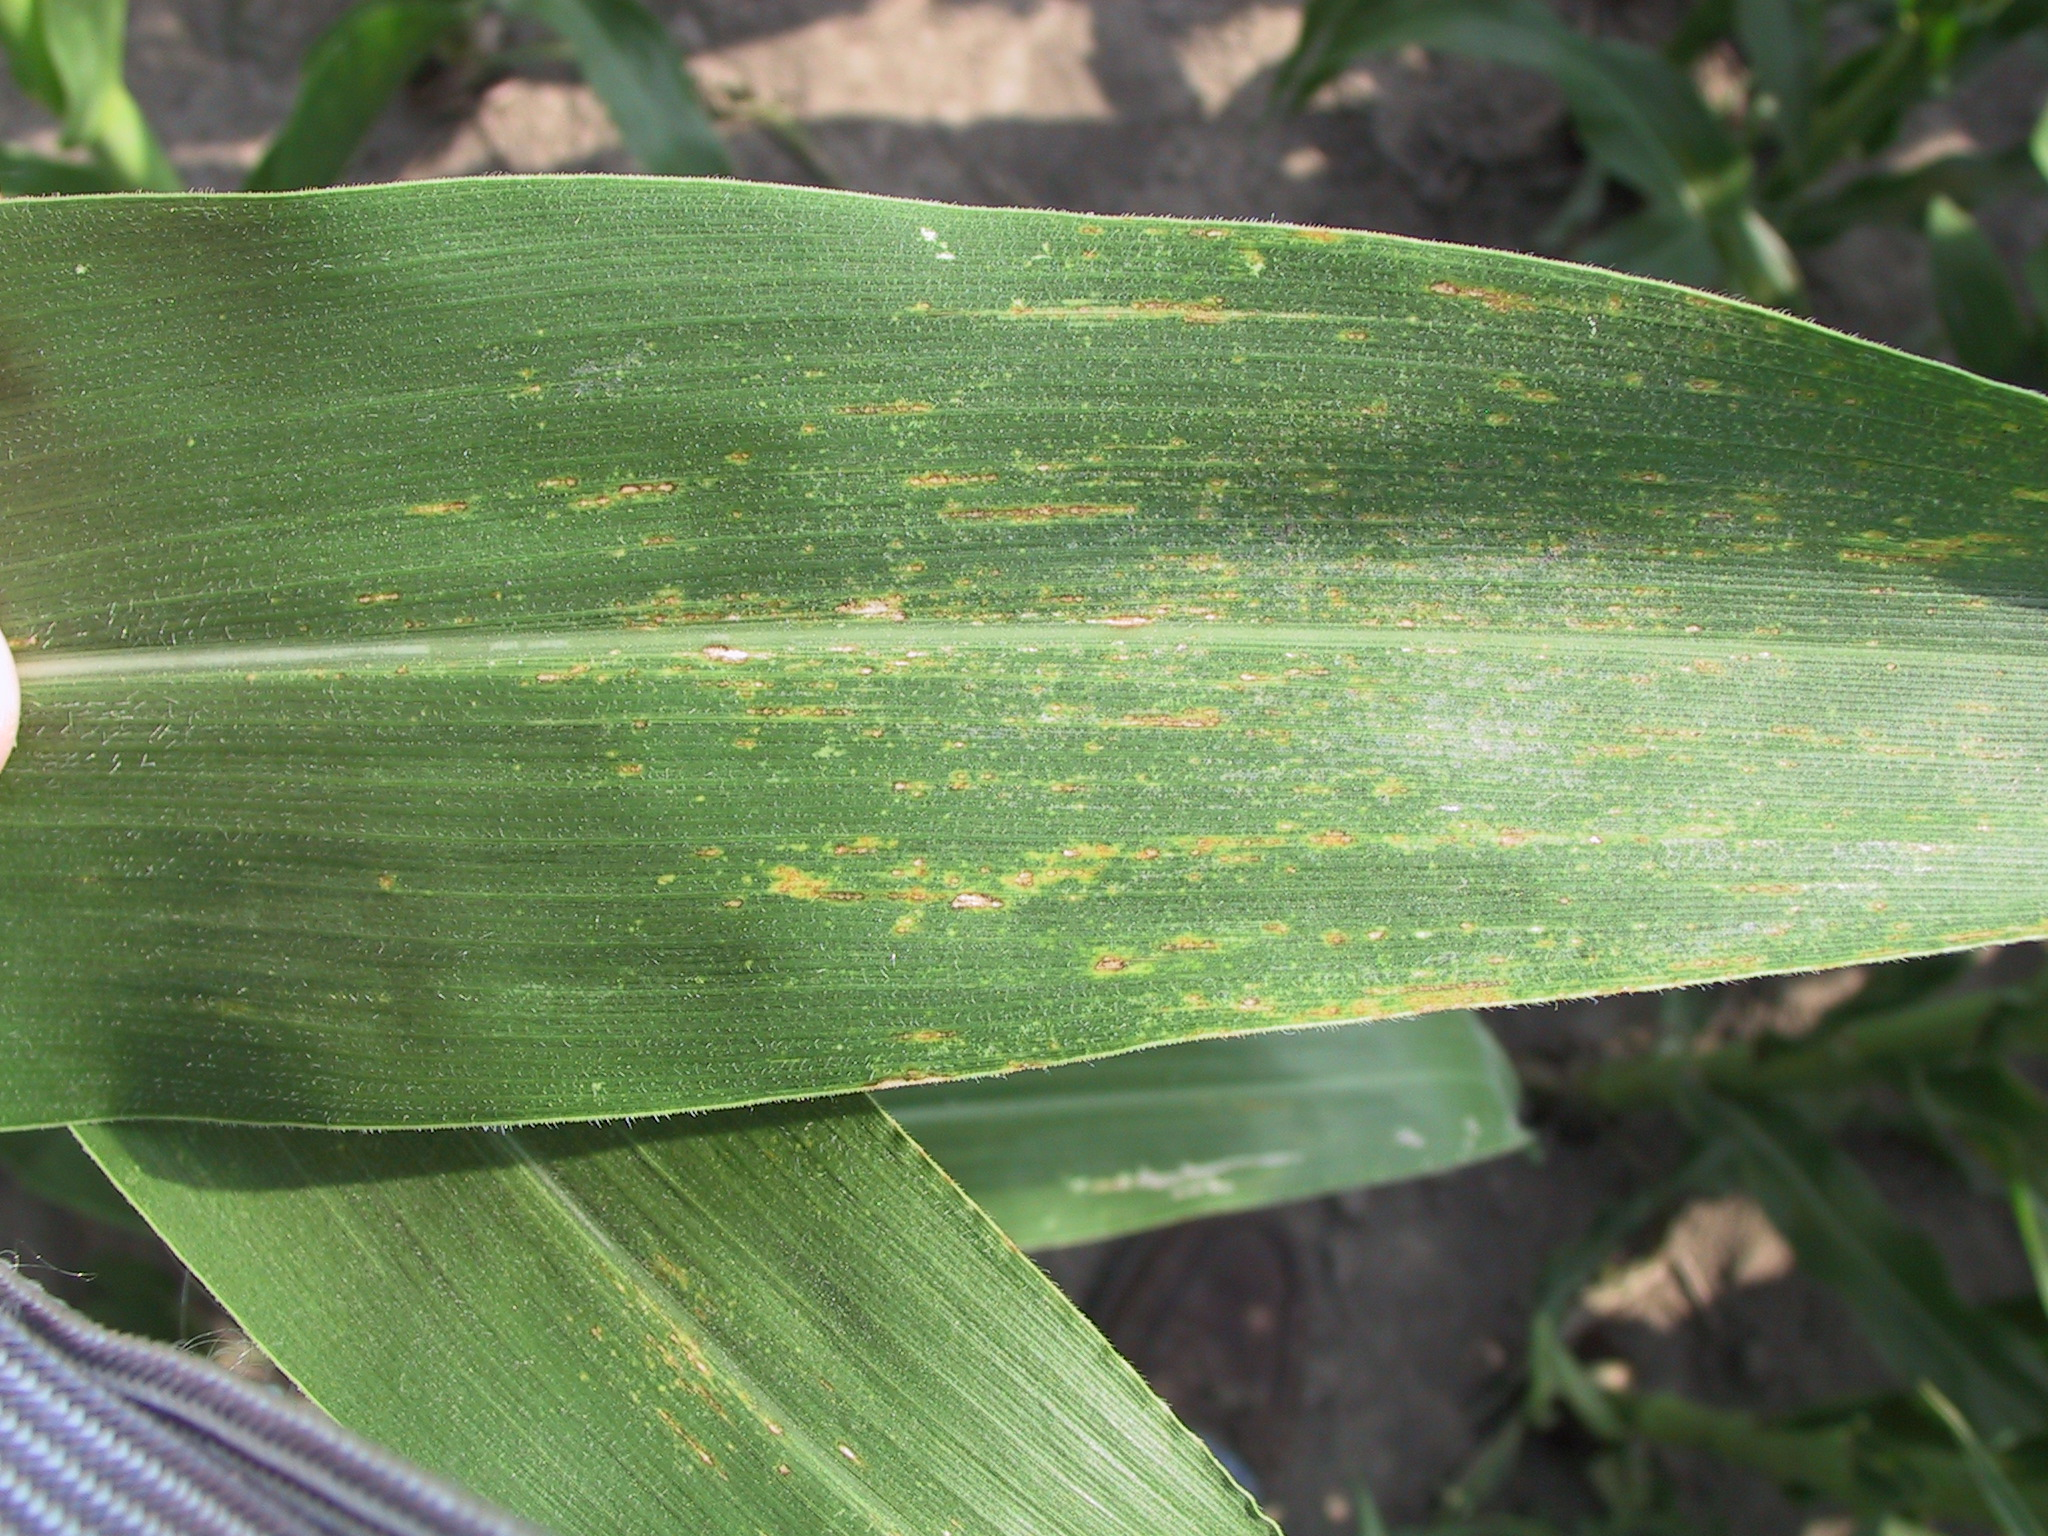 Northern corn leaf spot lesions.